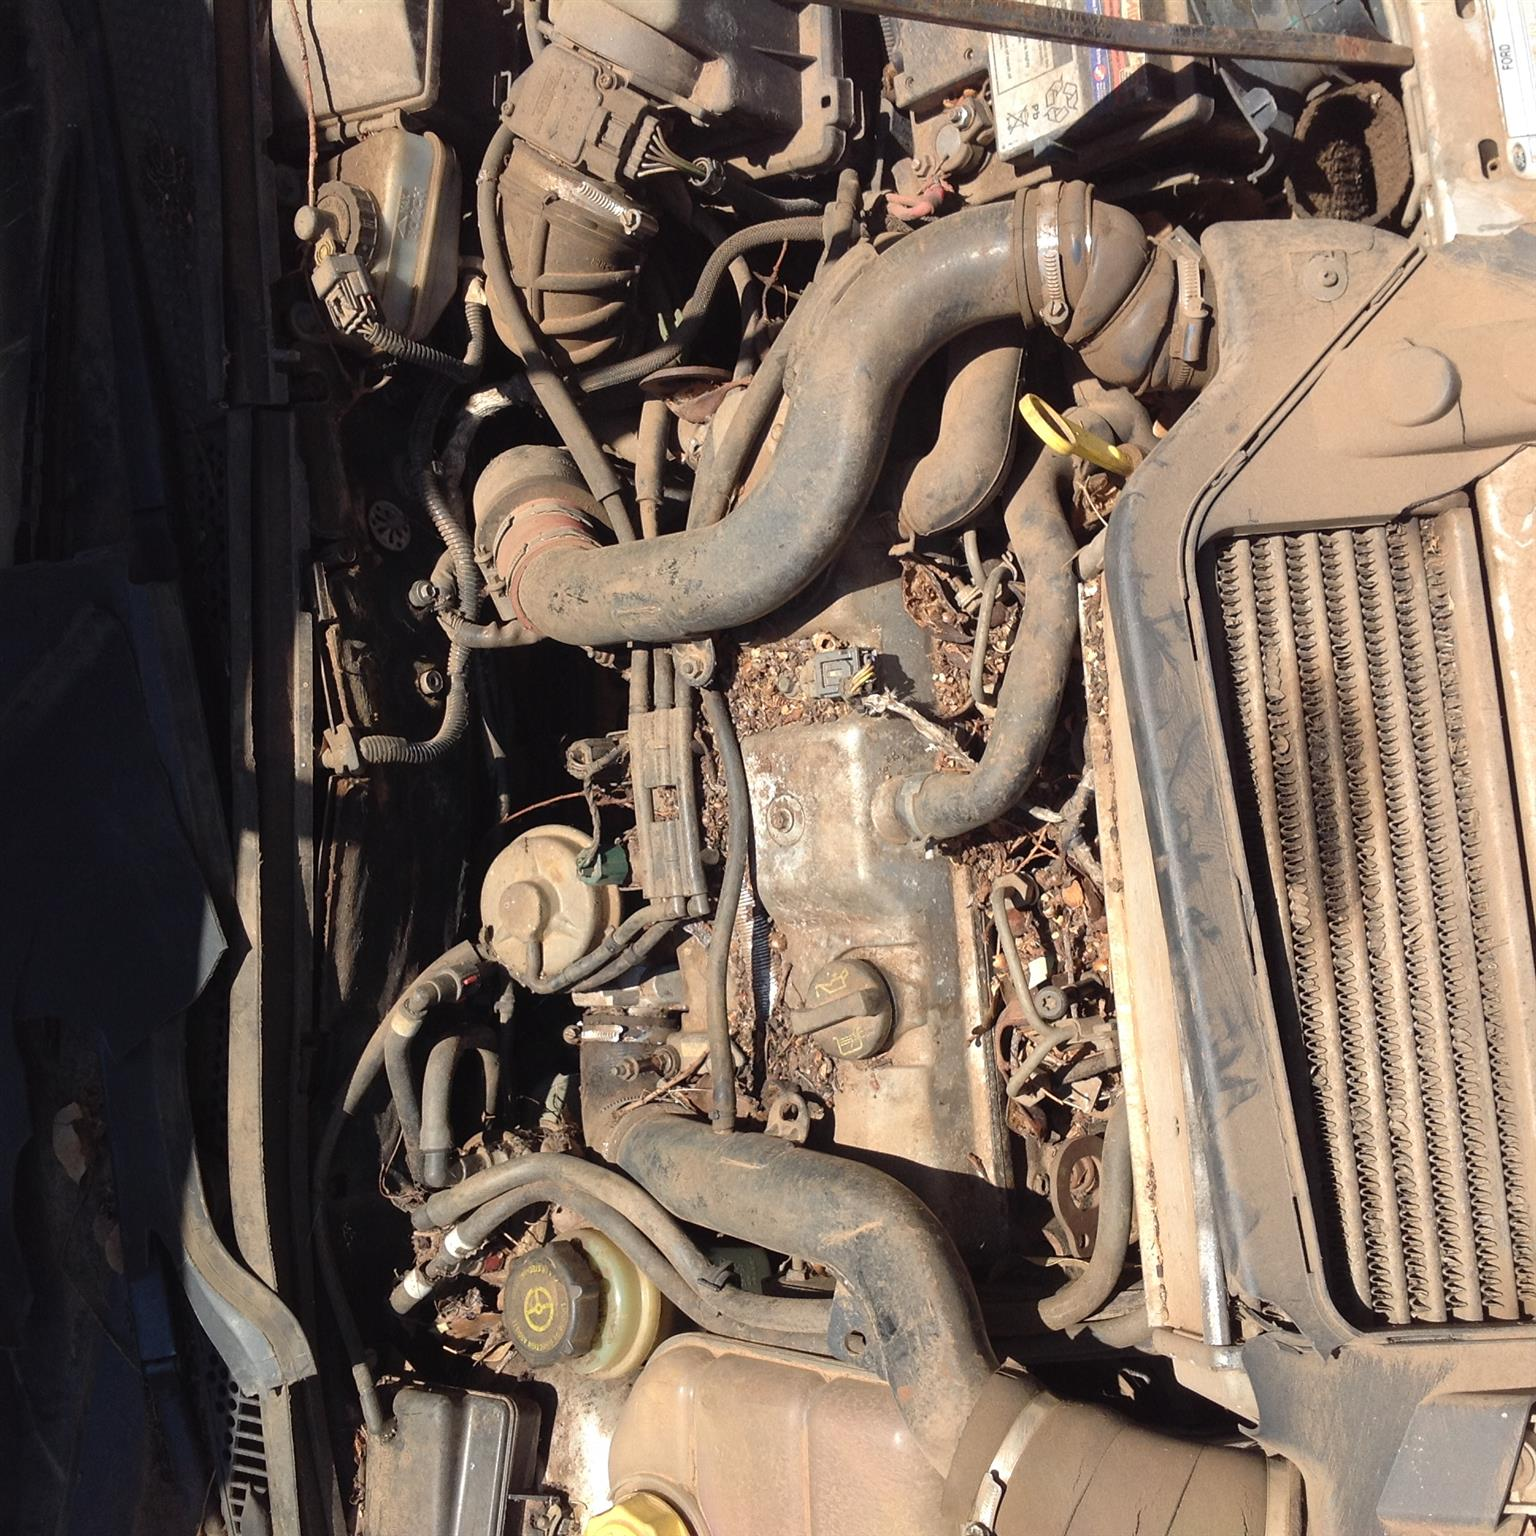 Stripping Ford Focus TDCi 2004 for Spares